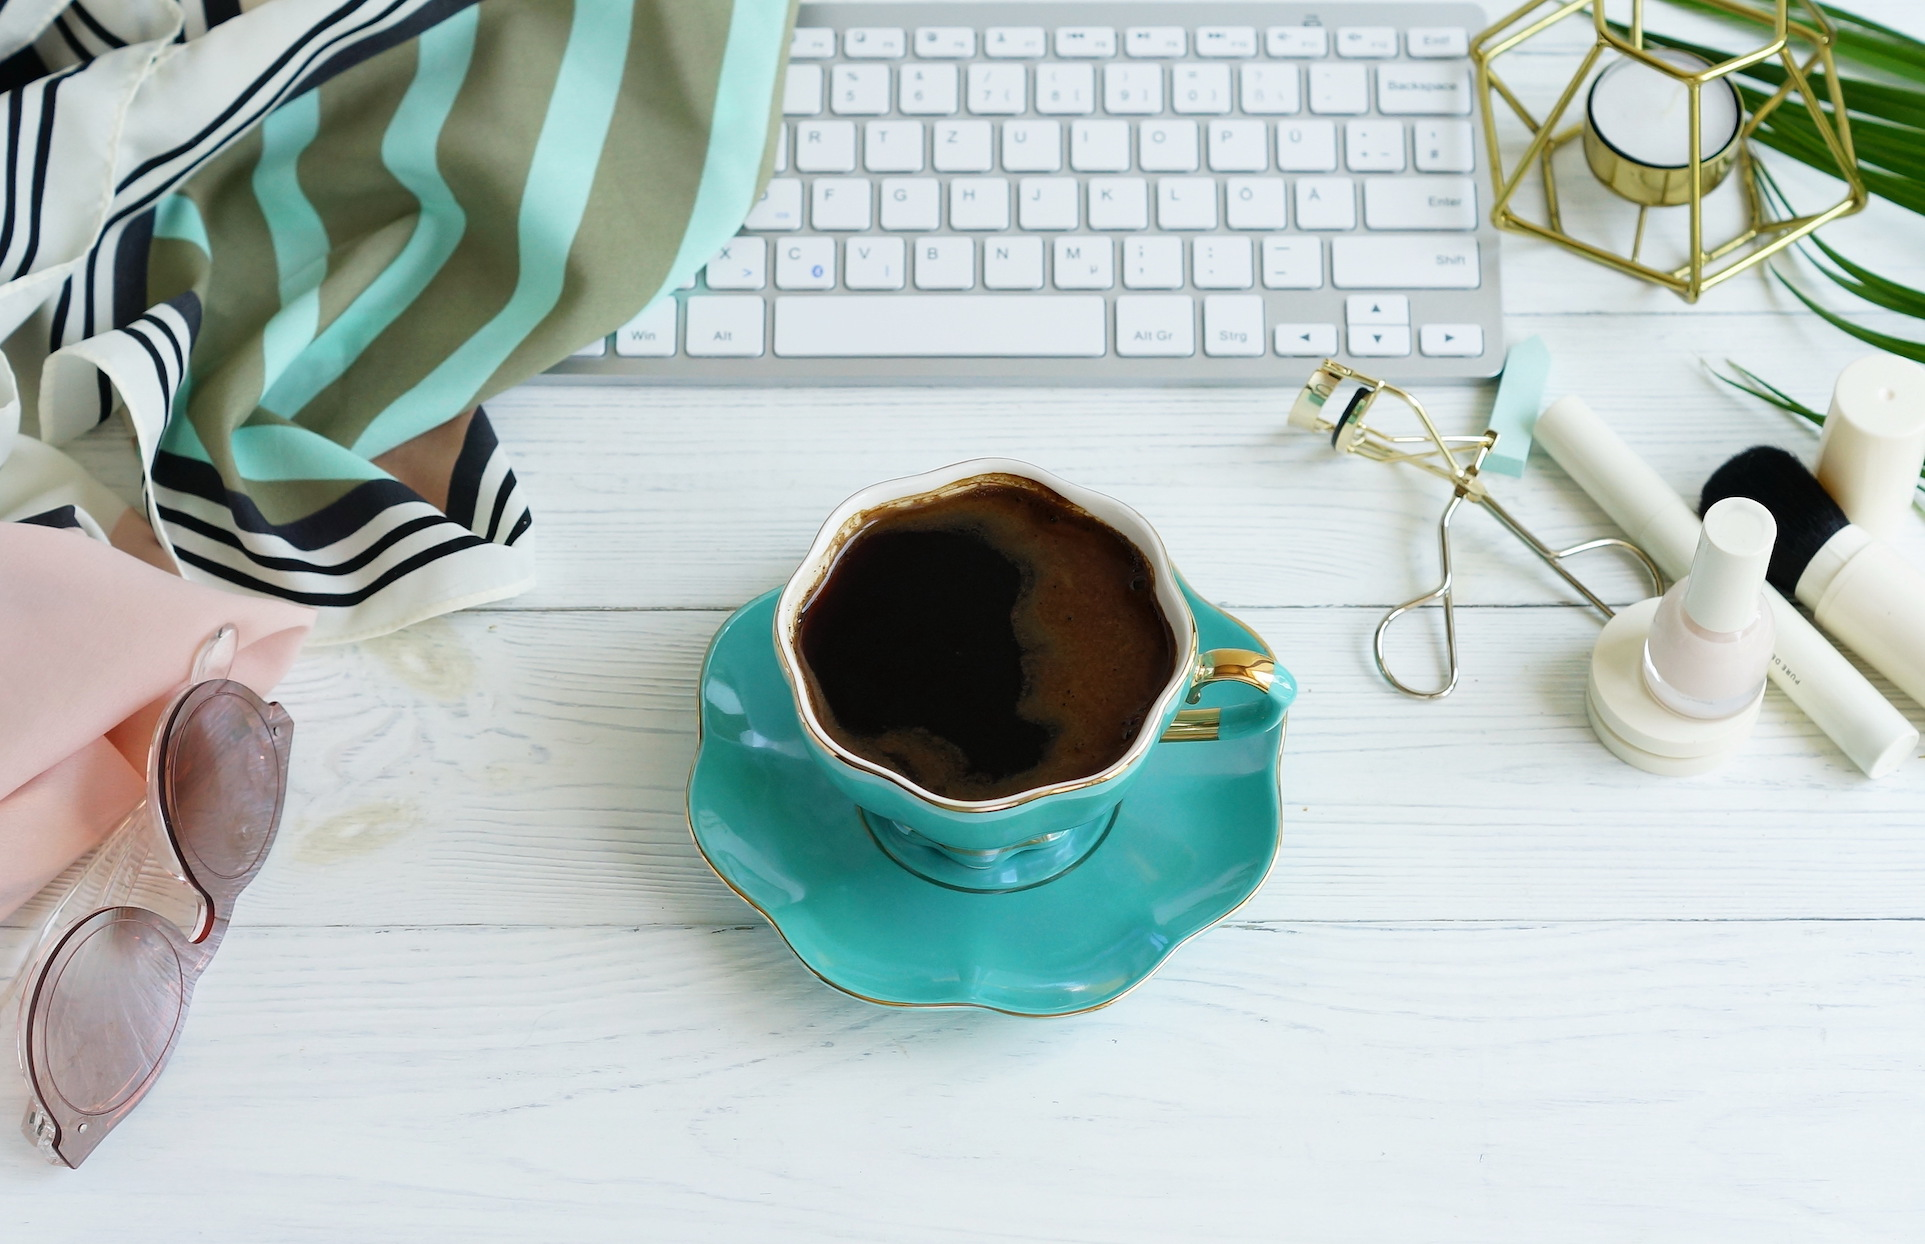 Cup of coffee and laptop for shopping online